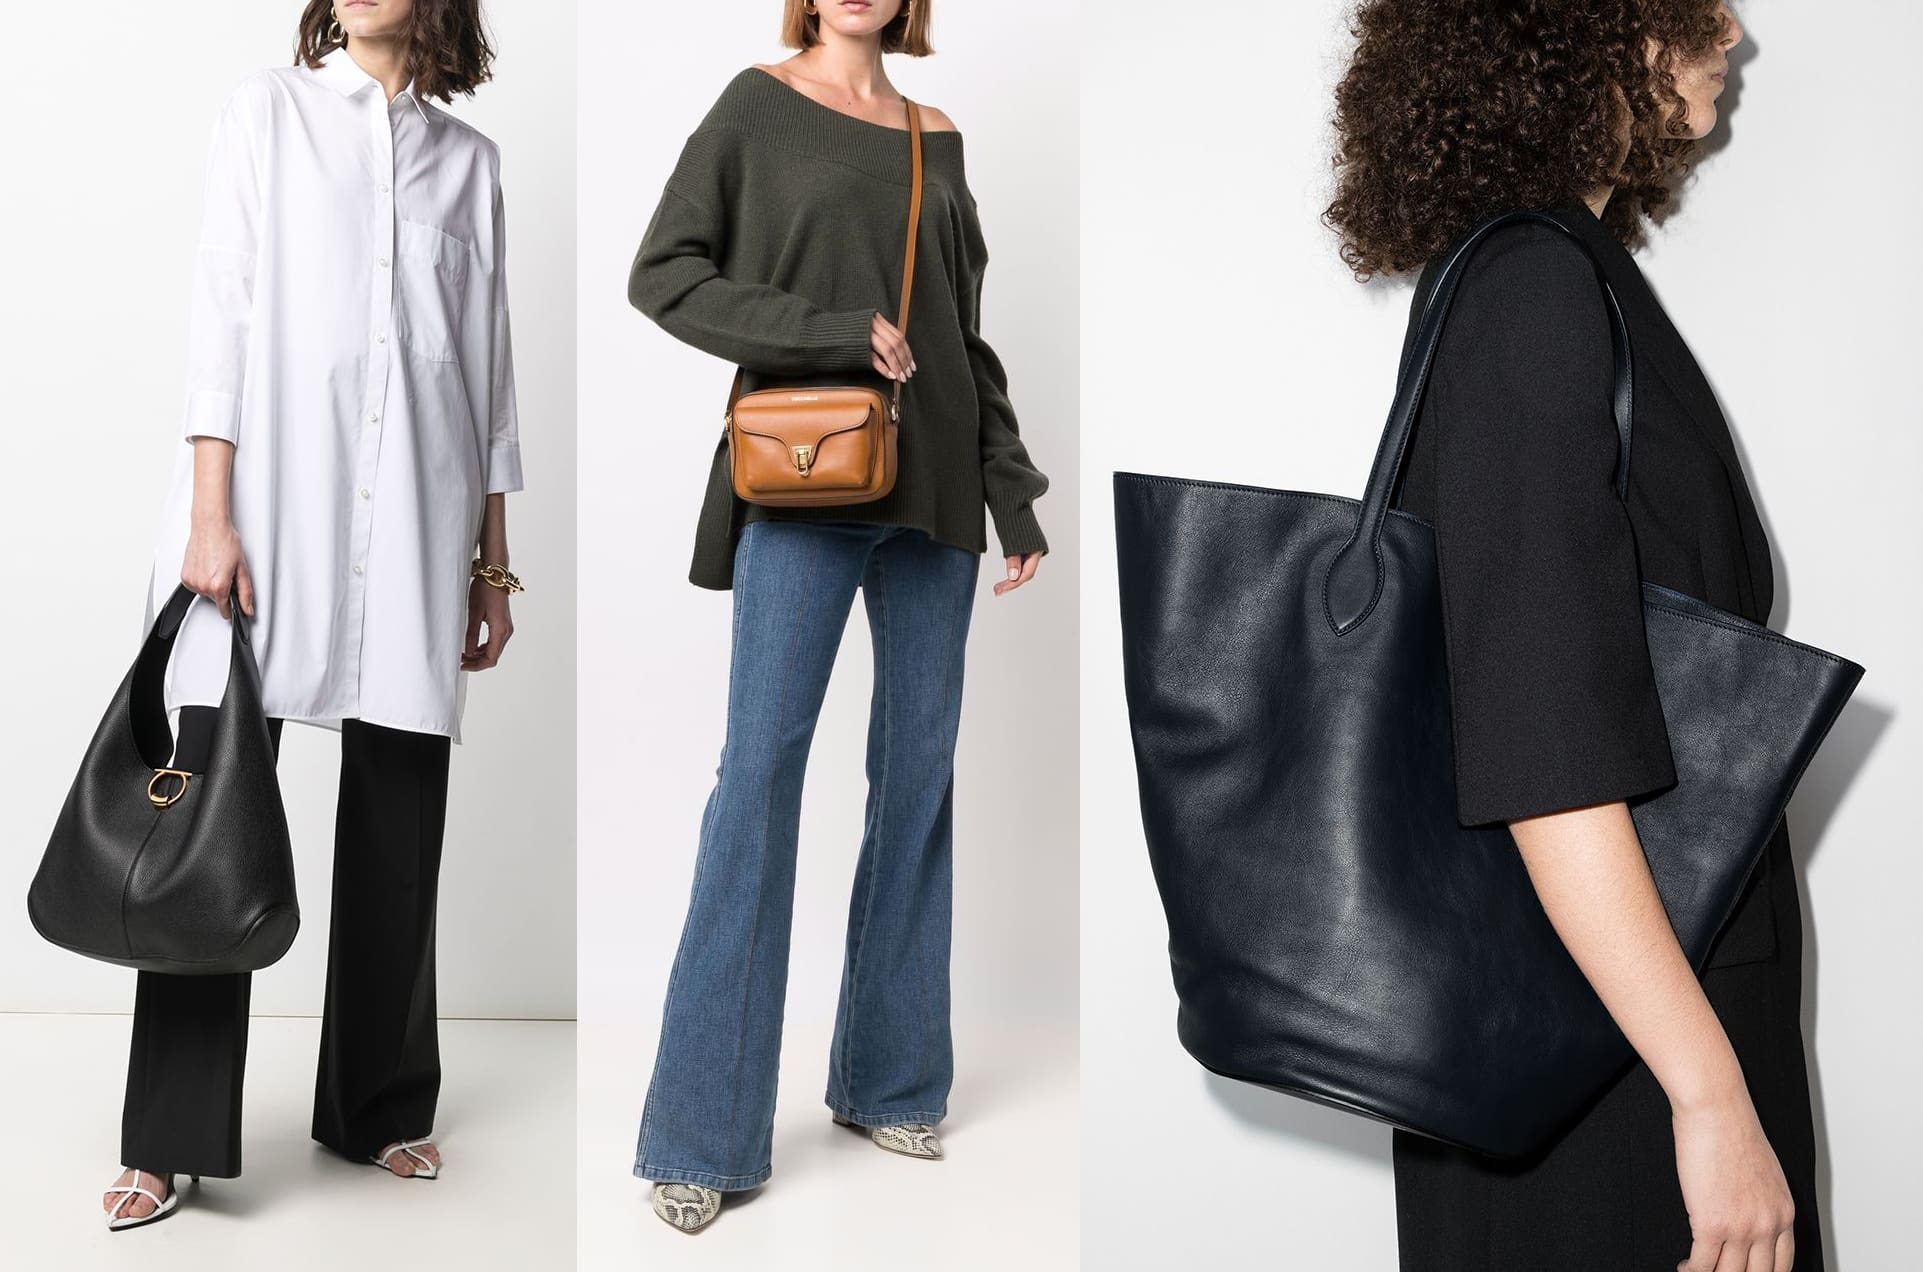 Hobo bags have a slouchy silhouette and are usually worn using a thick shoulder strap; satchels are often carried in multiple ways, either by the top handle or crossbody strap; totes have a structured silhouette and usually come with double handles